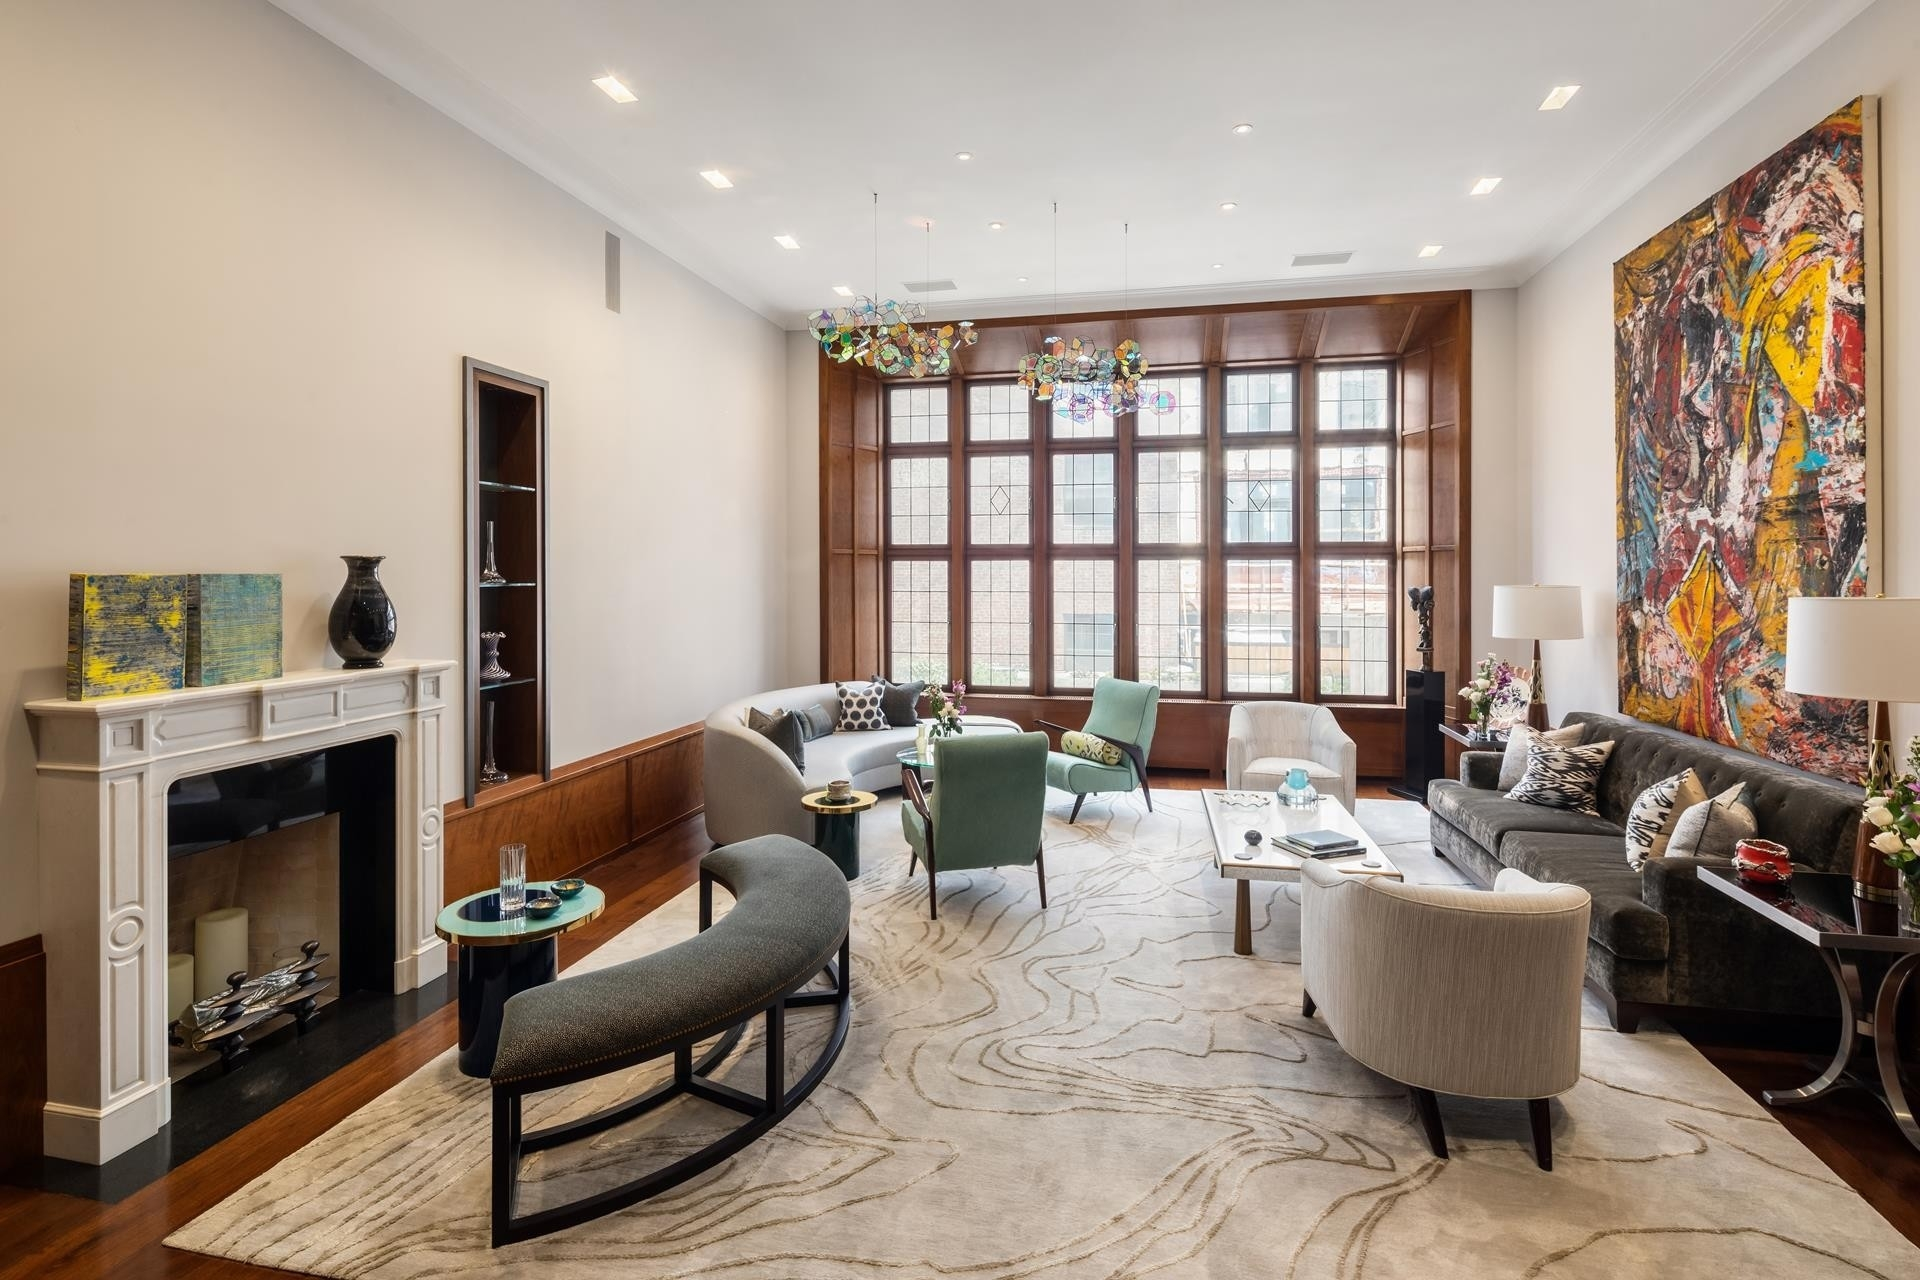 2. Single Family Townhouse for Sale at 159 E 61ST ST , TOWNHOUSE Lenox Hill, New York, NY 10065